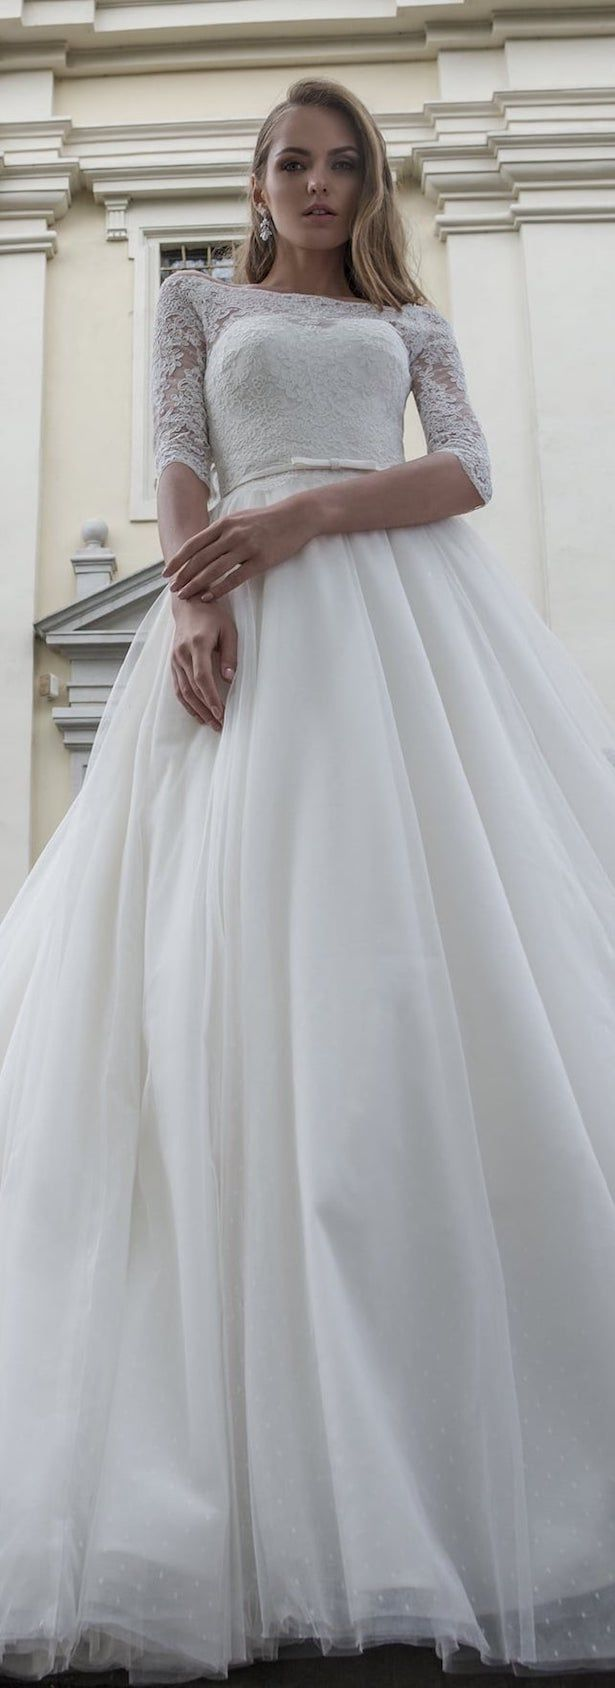 Dominiss wedding dresses wedding dress and weddings